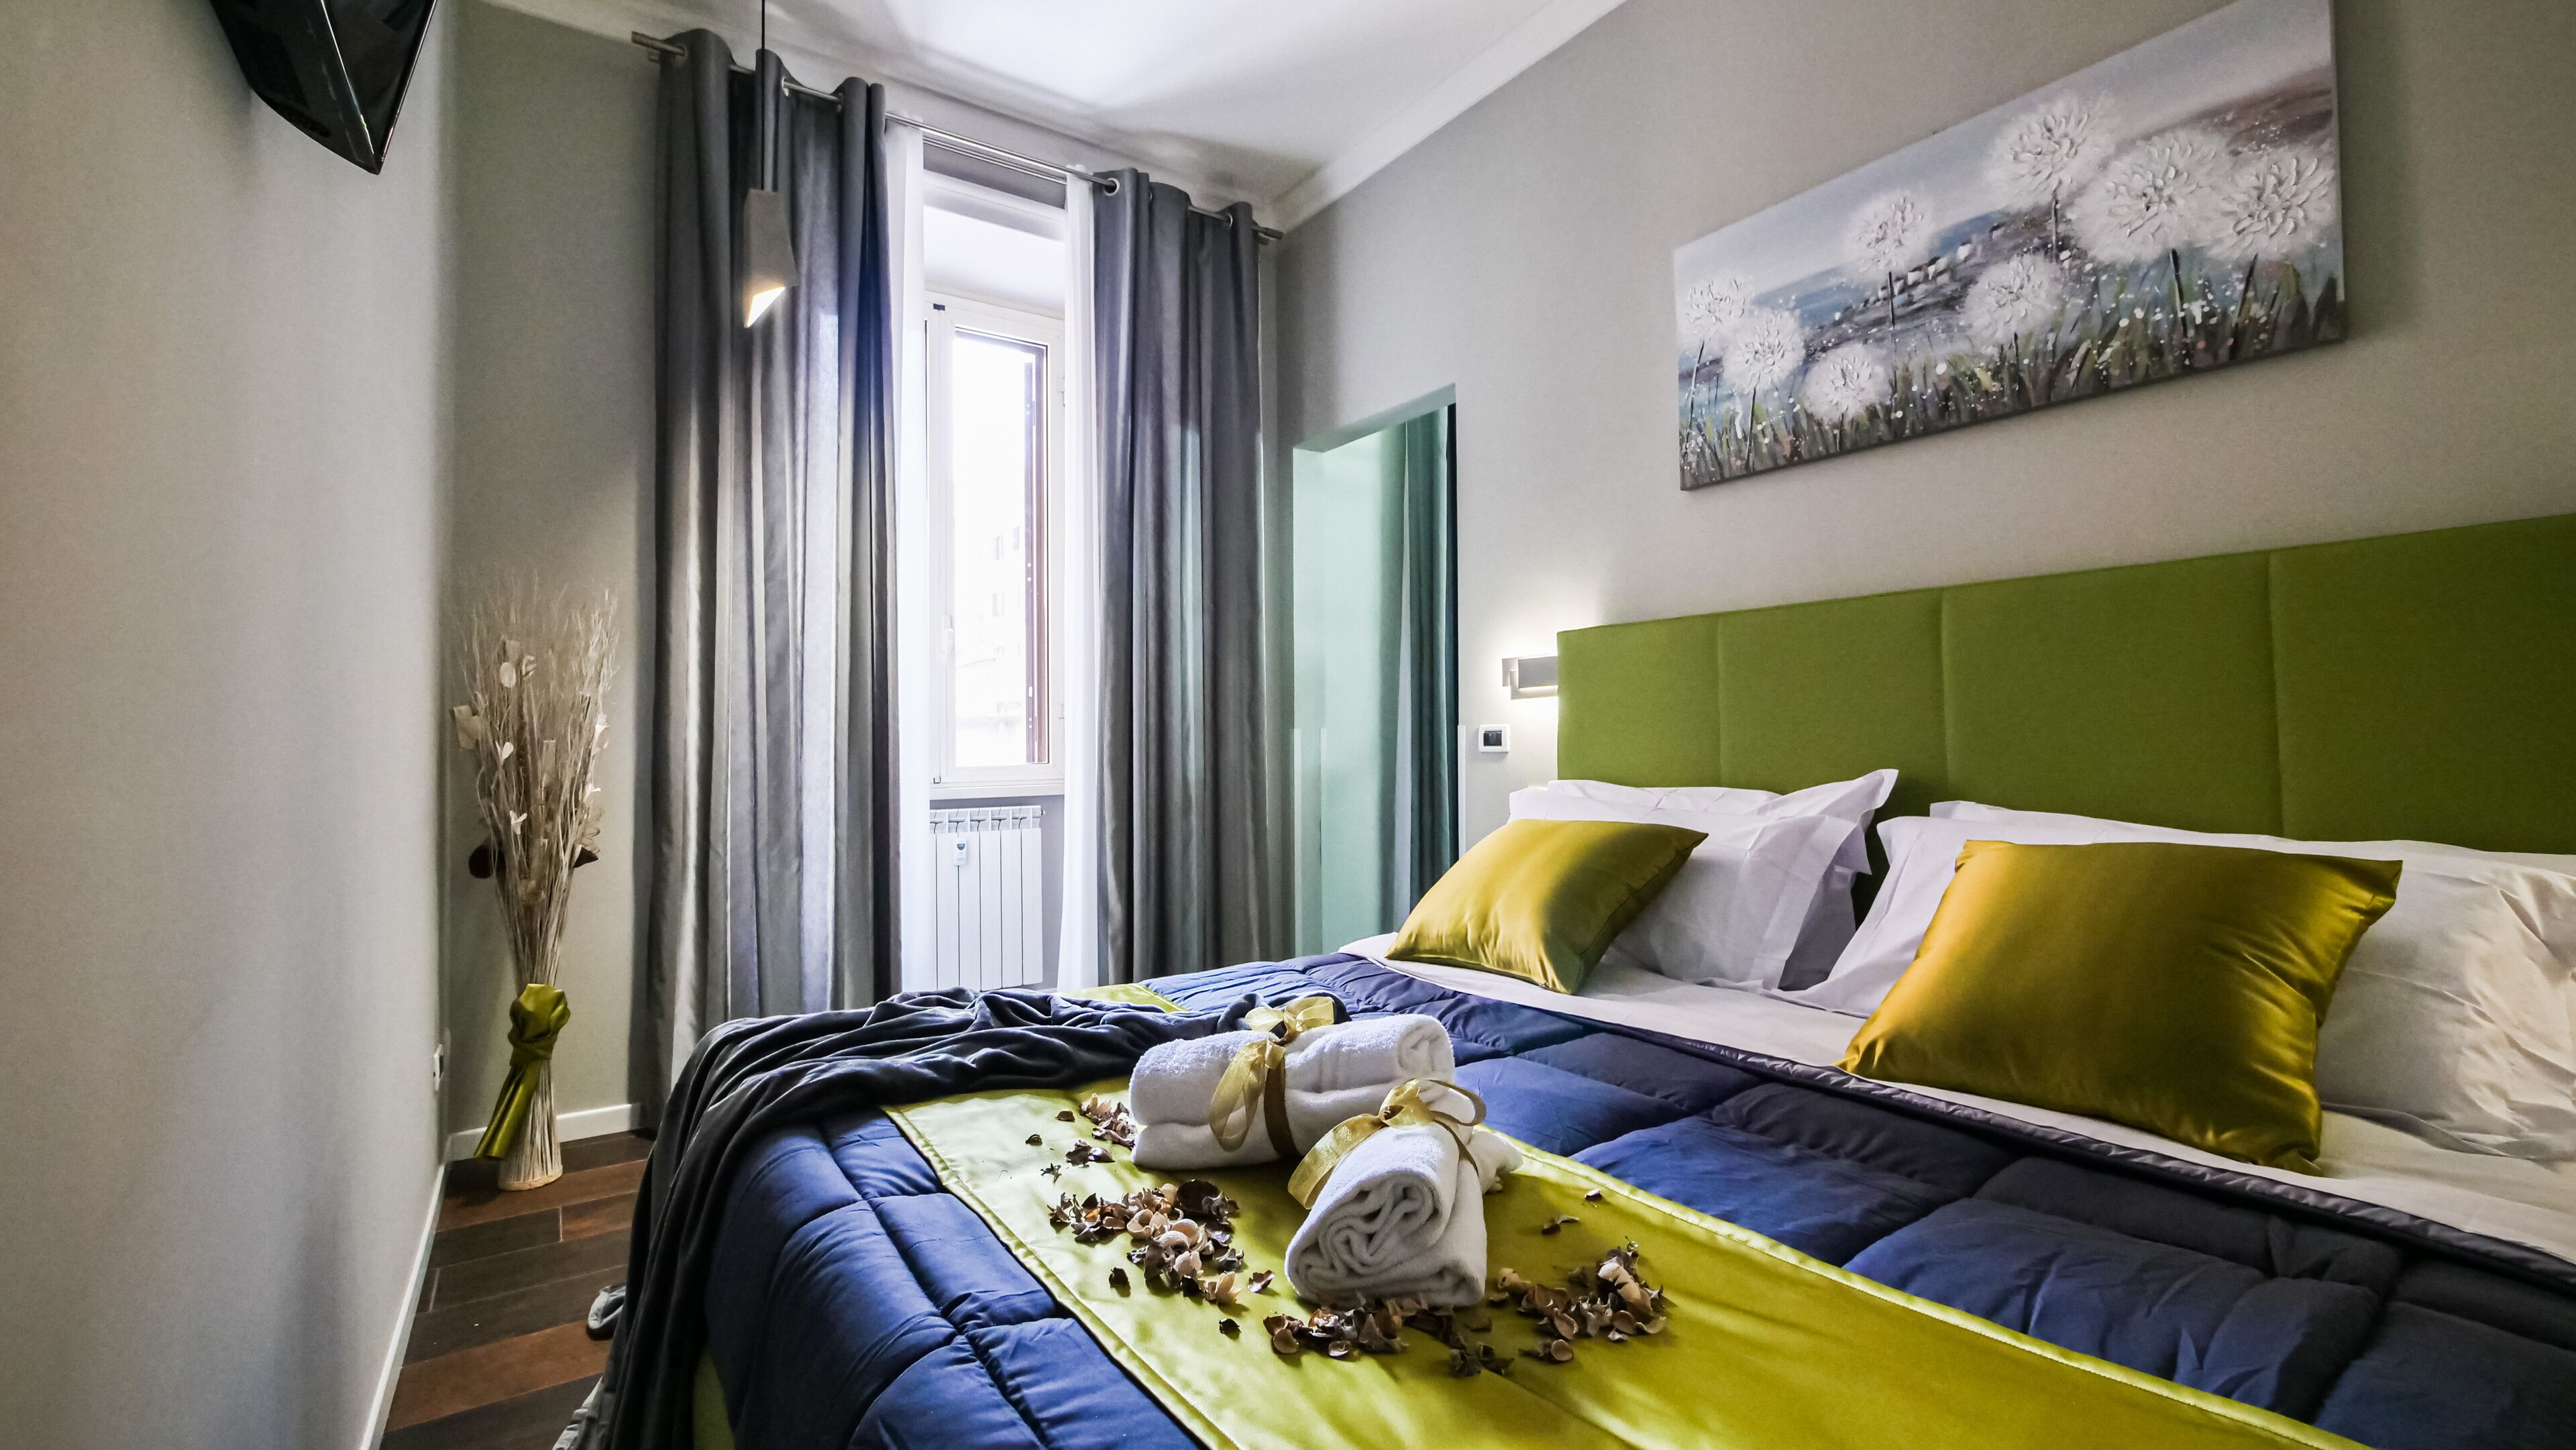 Home Suites Giolitti